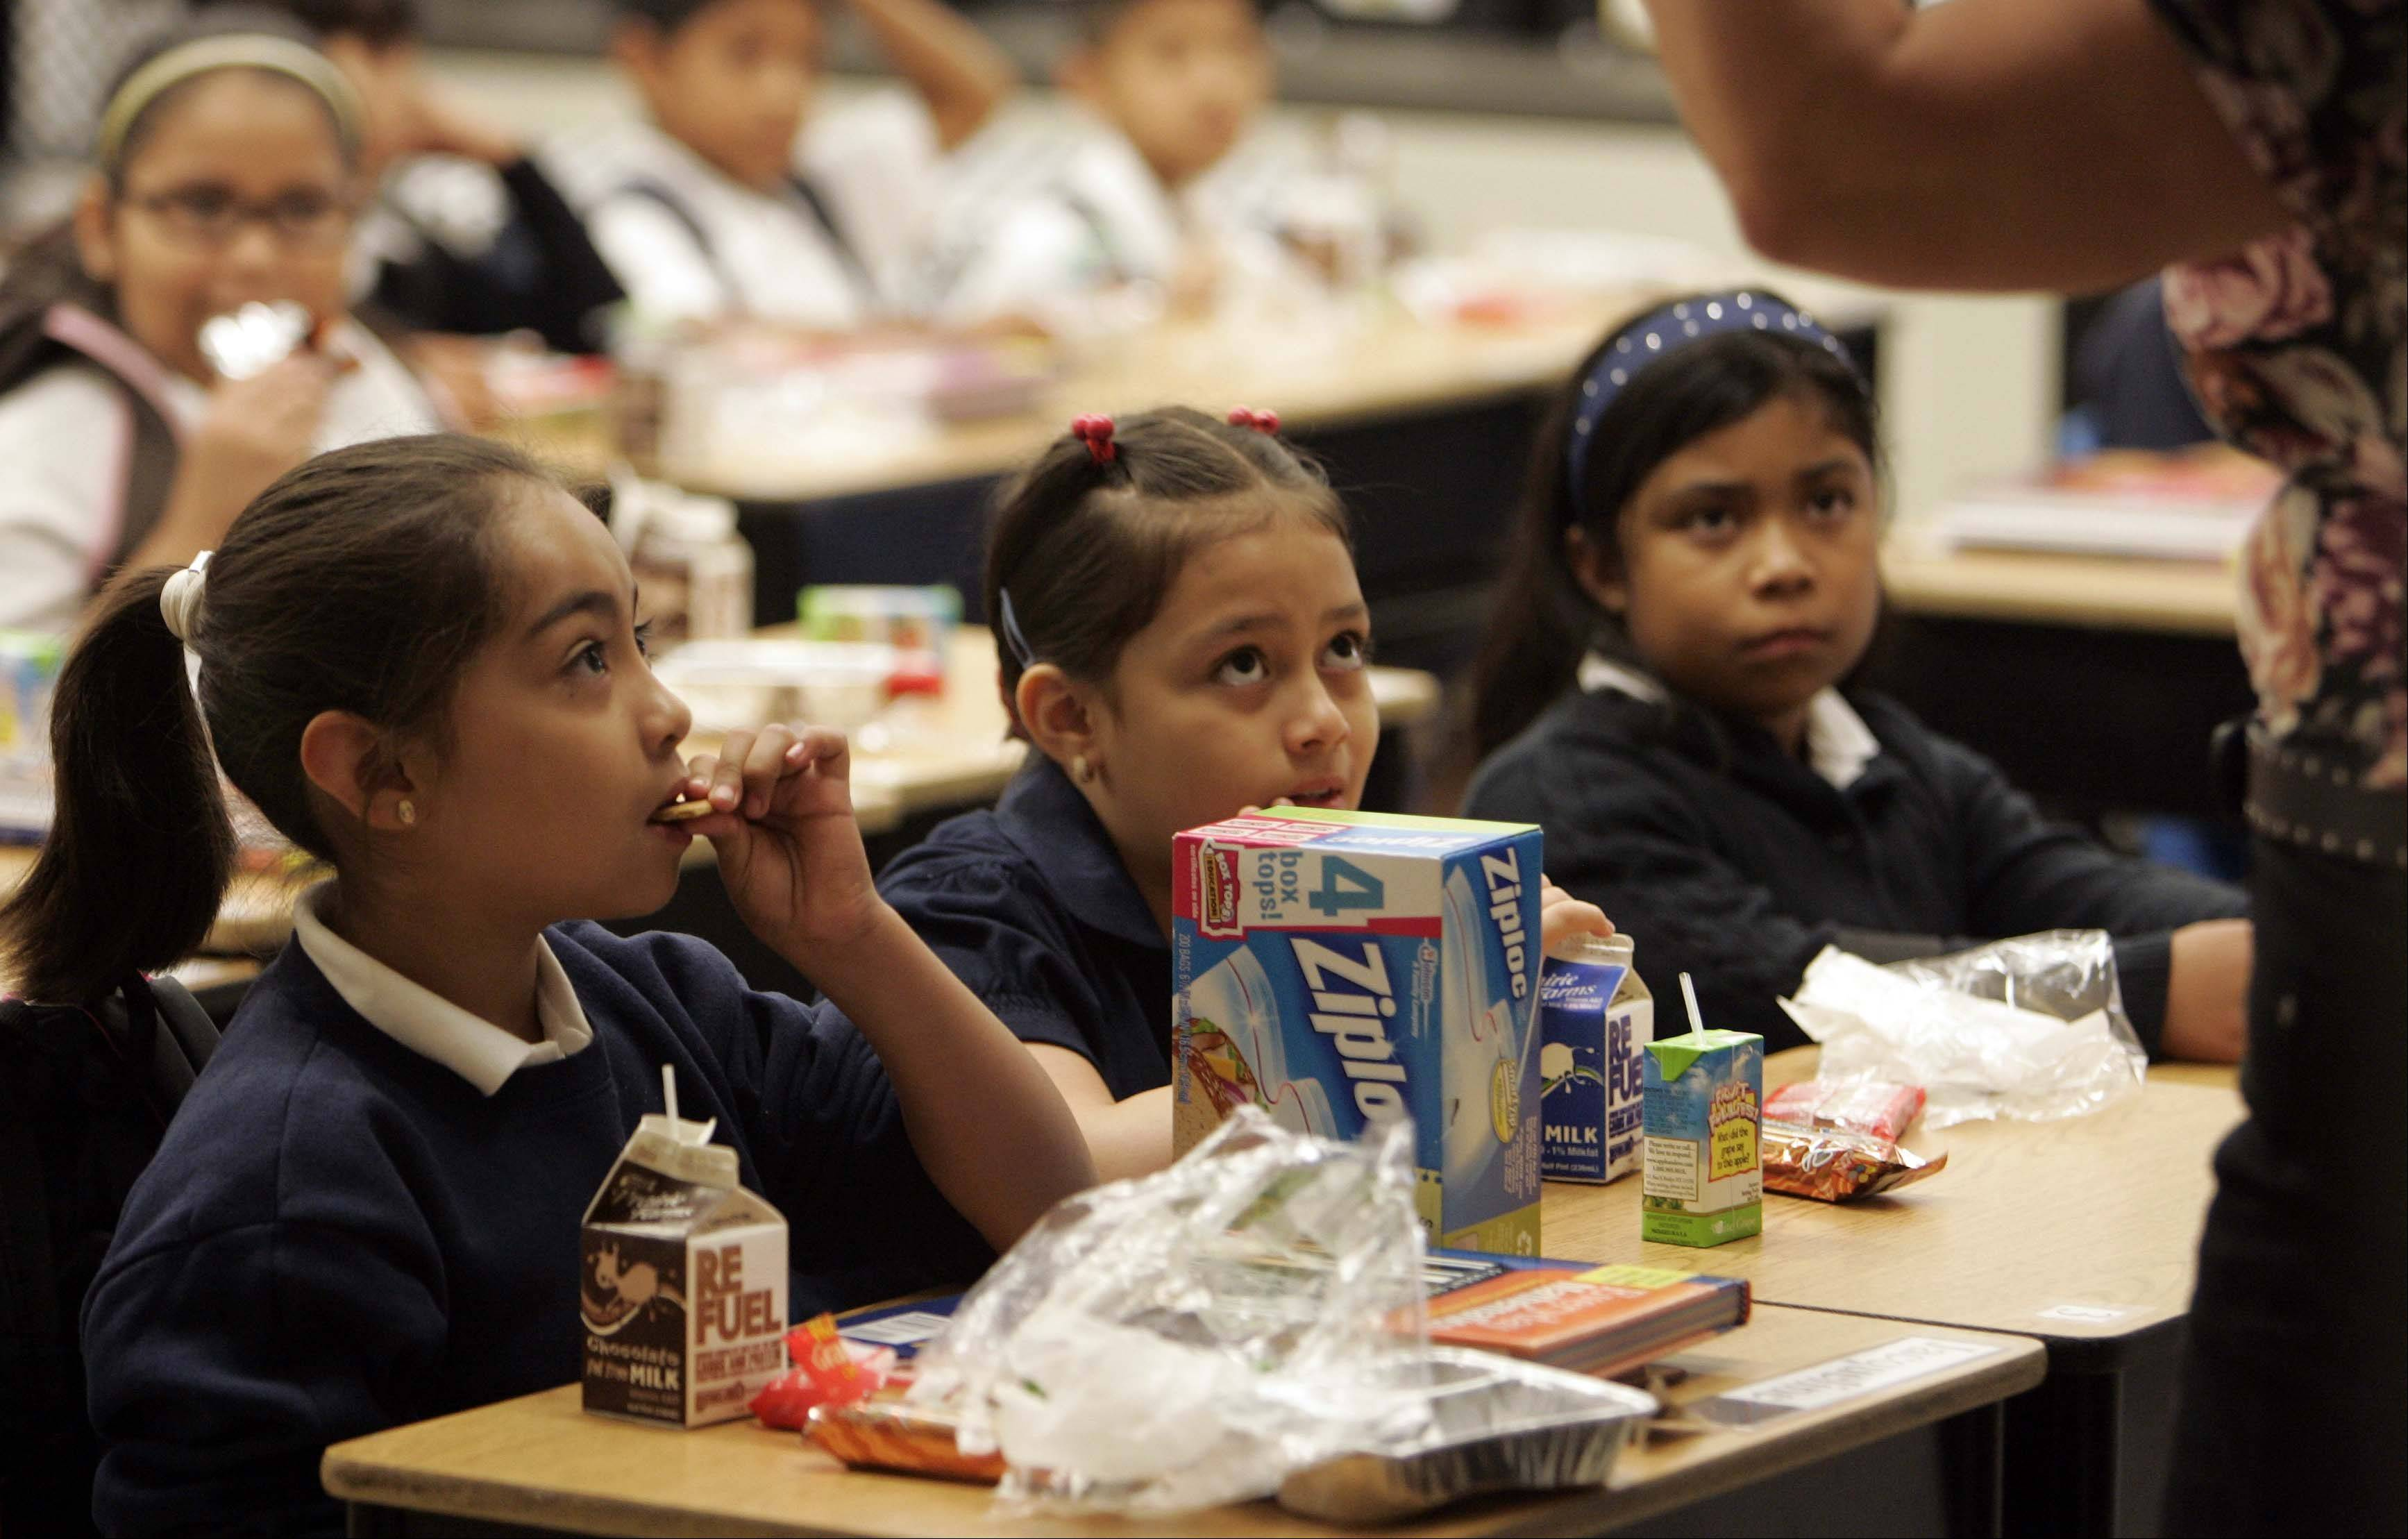 Jacqueline Castillo, left, listens to her teacher Sylvia Eagels Wednesday as she eats her breakfast during the first day of school at Gifford Elementary School in Elgin. Harriet Gifford is one of 10 schools in Elgin Area School District U-46 that now offer a free breakfast to each child every day.